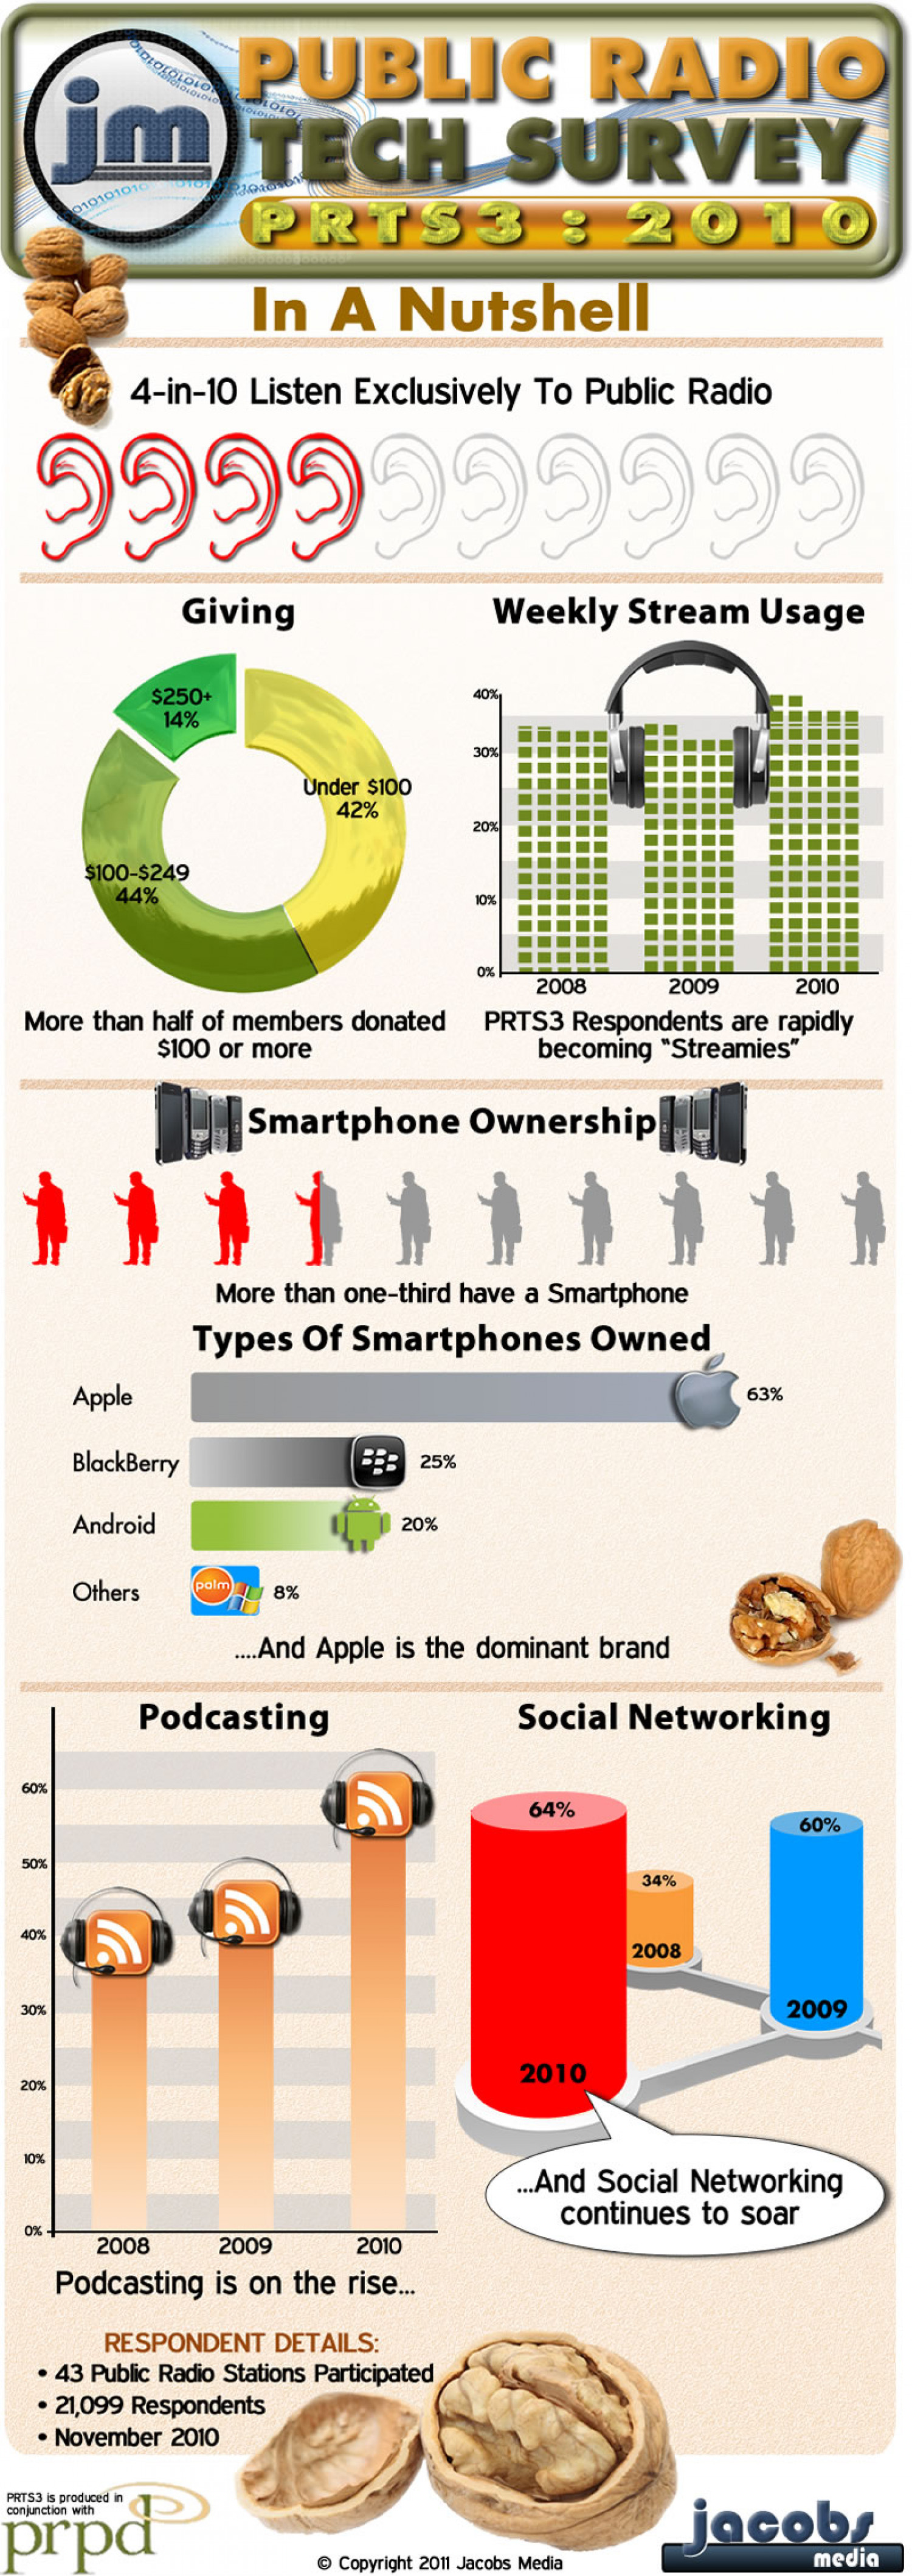 Jacobs Media - Public Radio Tech Survey 3 In A Nutshell Infographic